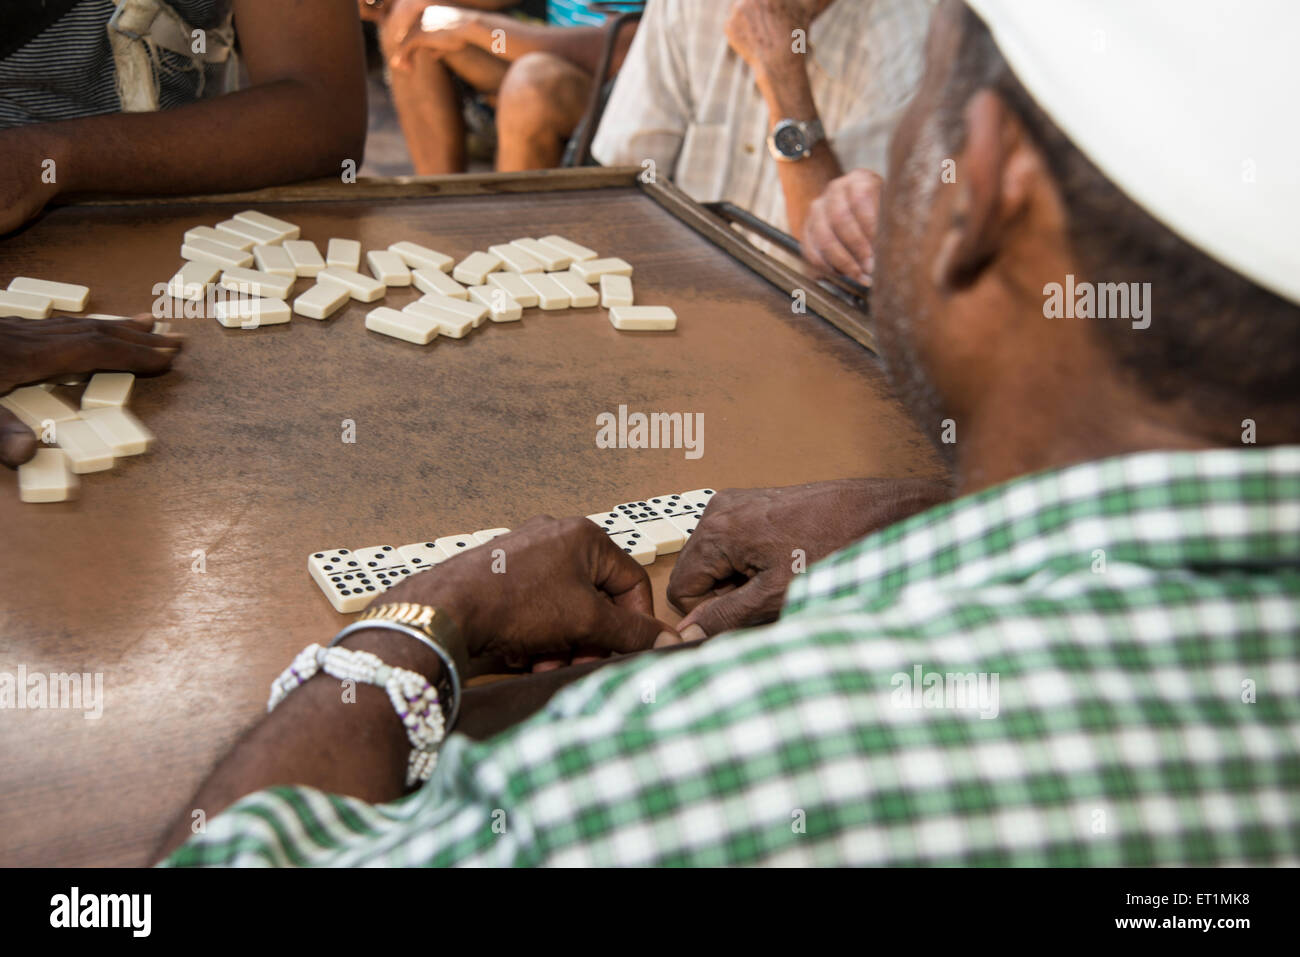 Group of old men playing dominoes - Stock Image